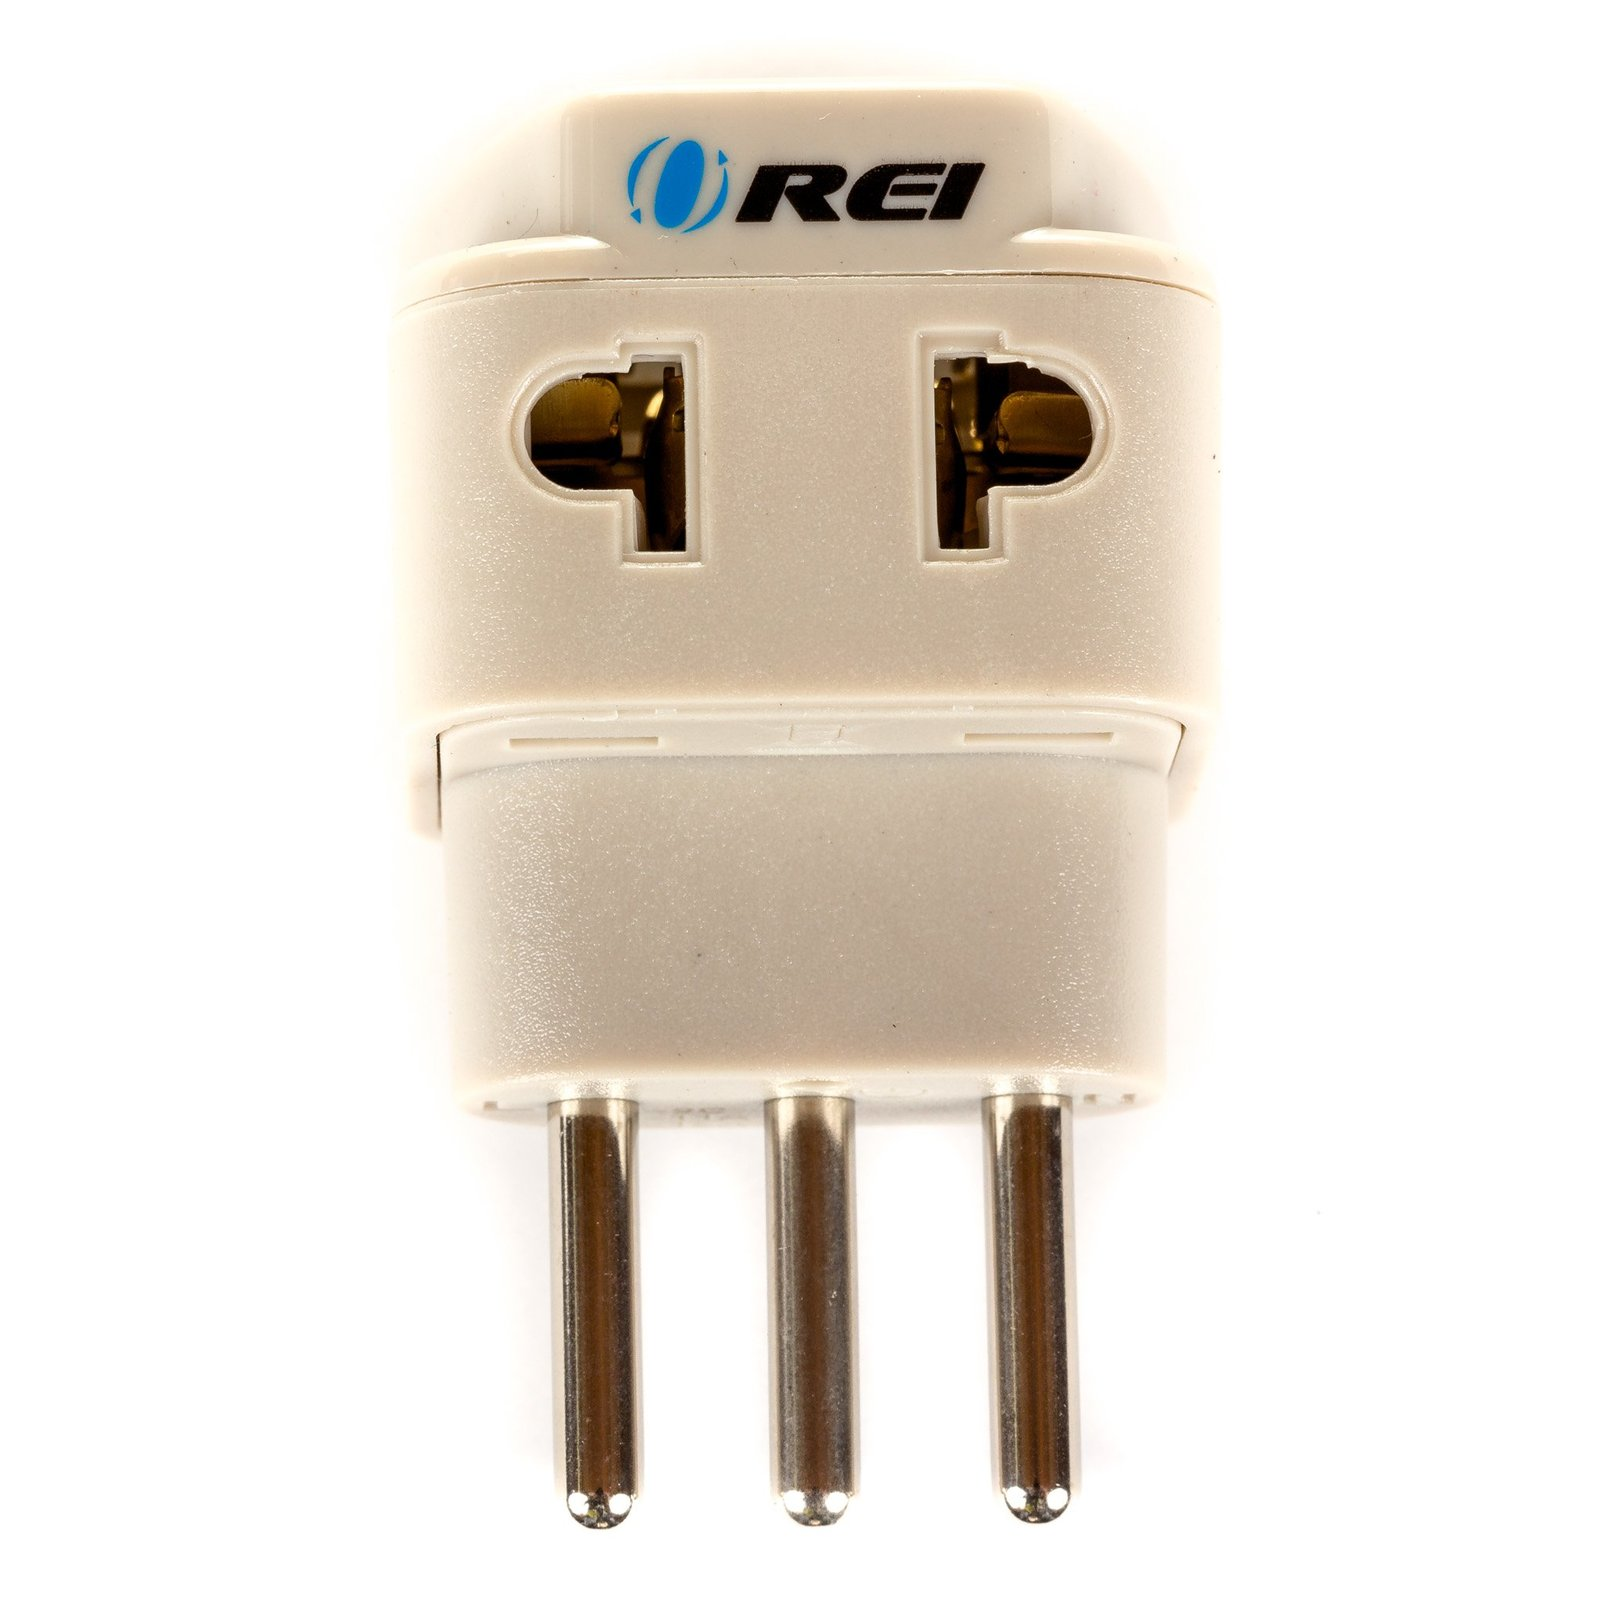 OREI Grounded Universal 2 in 1 Plug Adapter Type L for Italy, Uruguay & more ... image 6